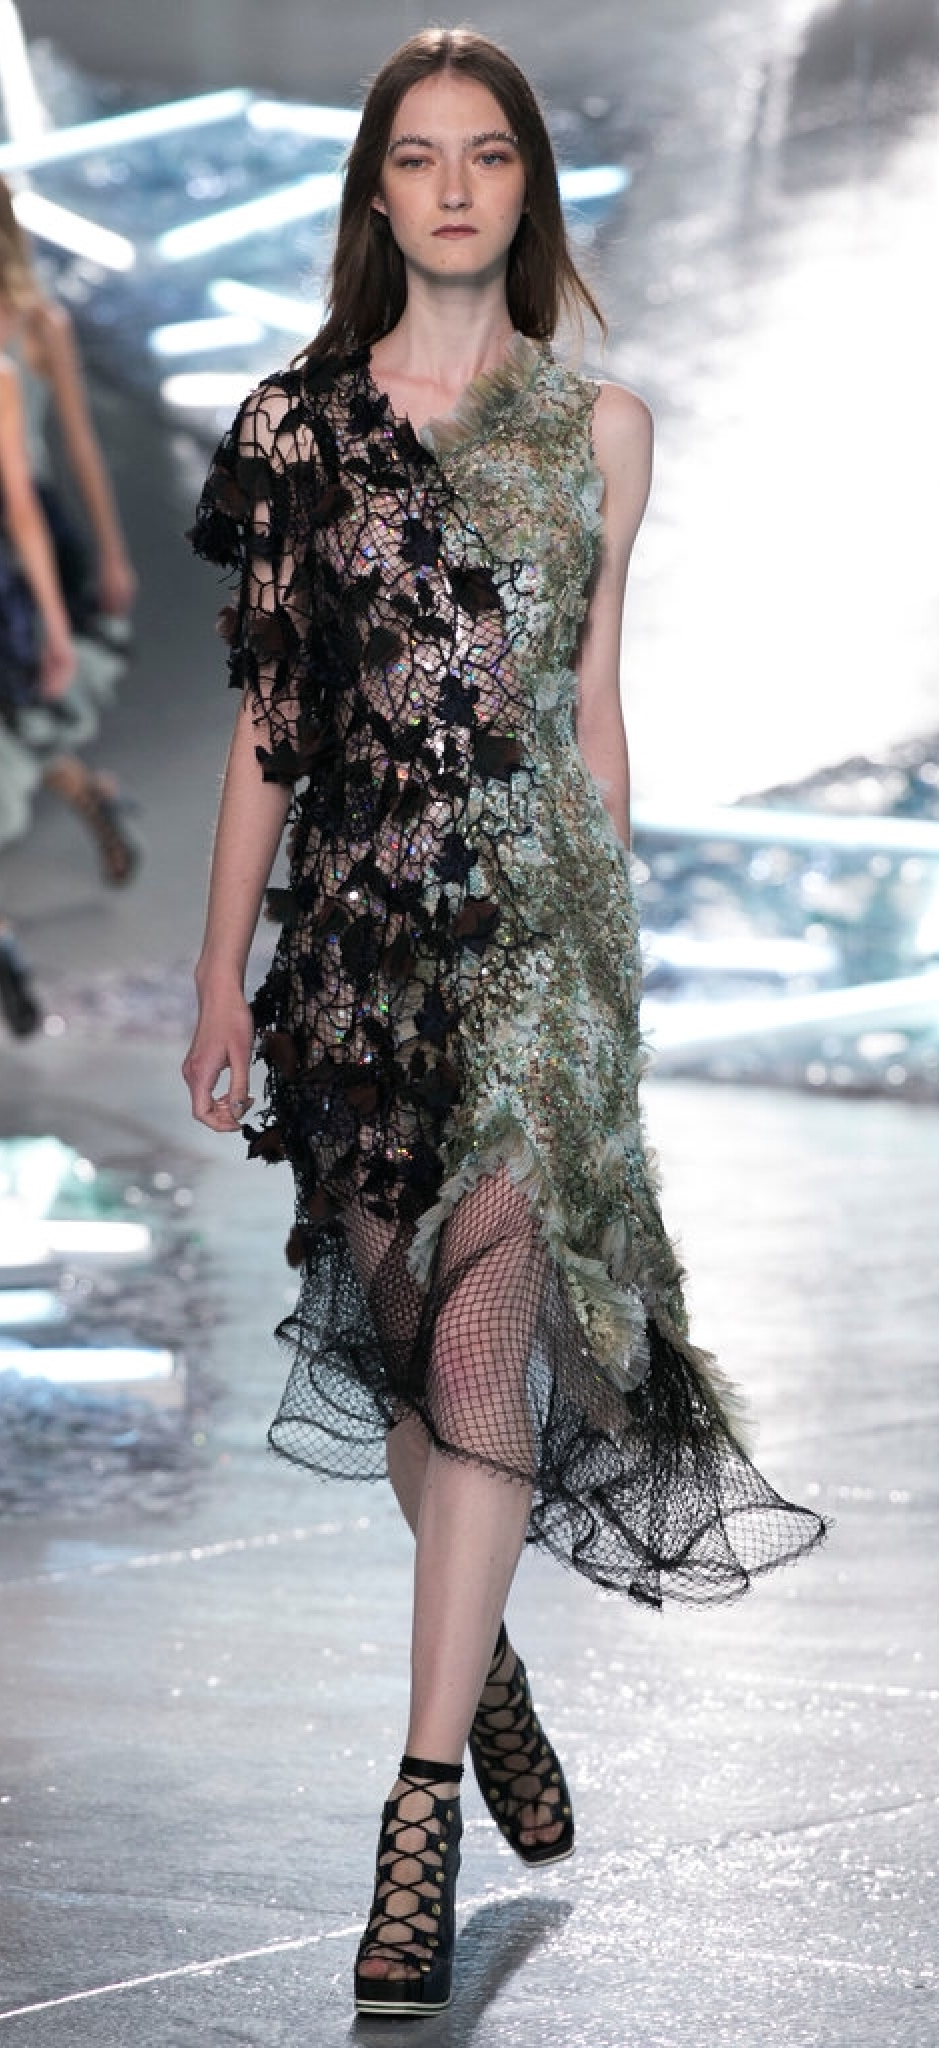 Rodarte's mixed media dress uses mesh, feathers and fringe...falling in all the right places of coverage.